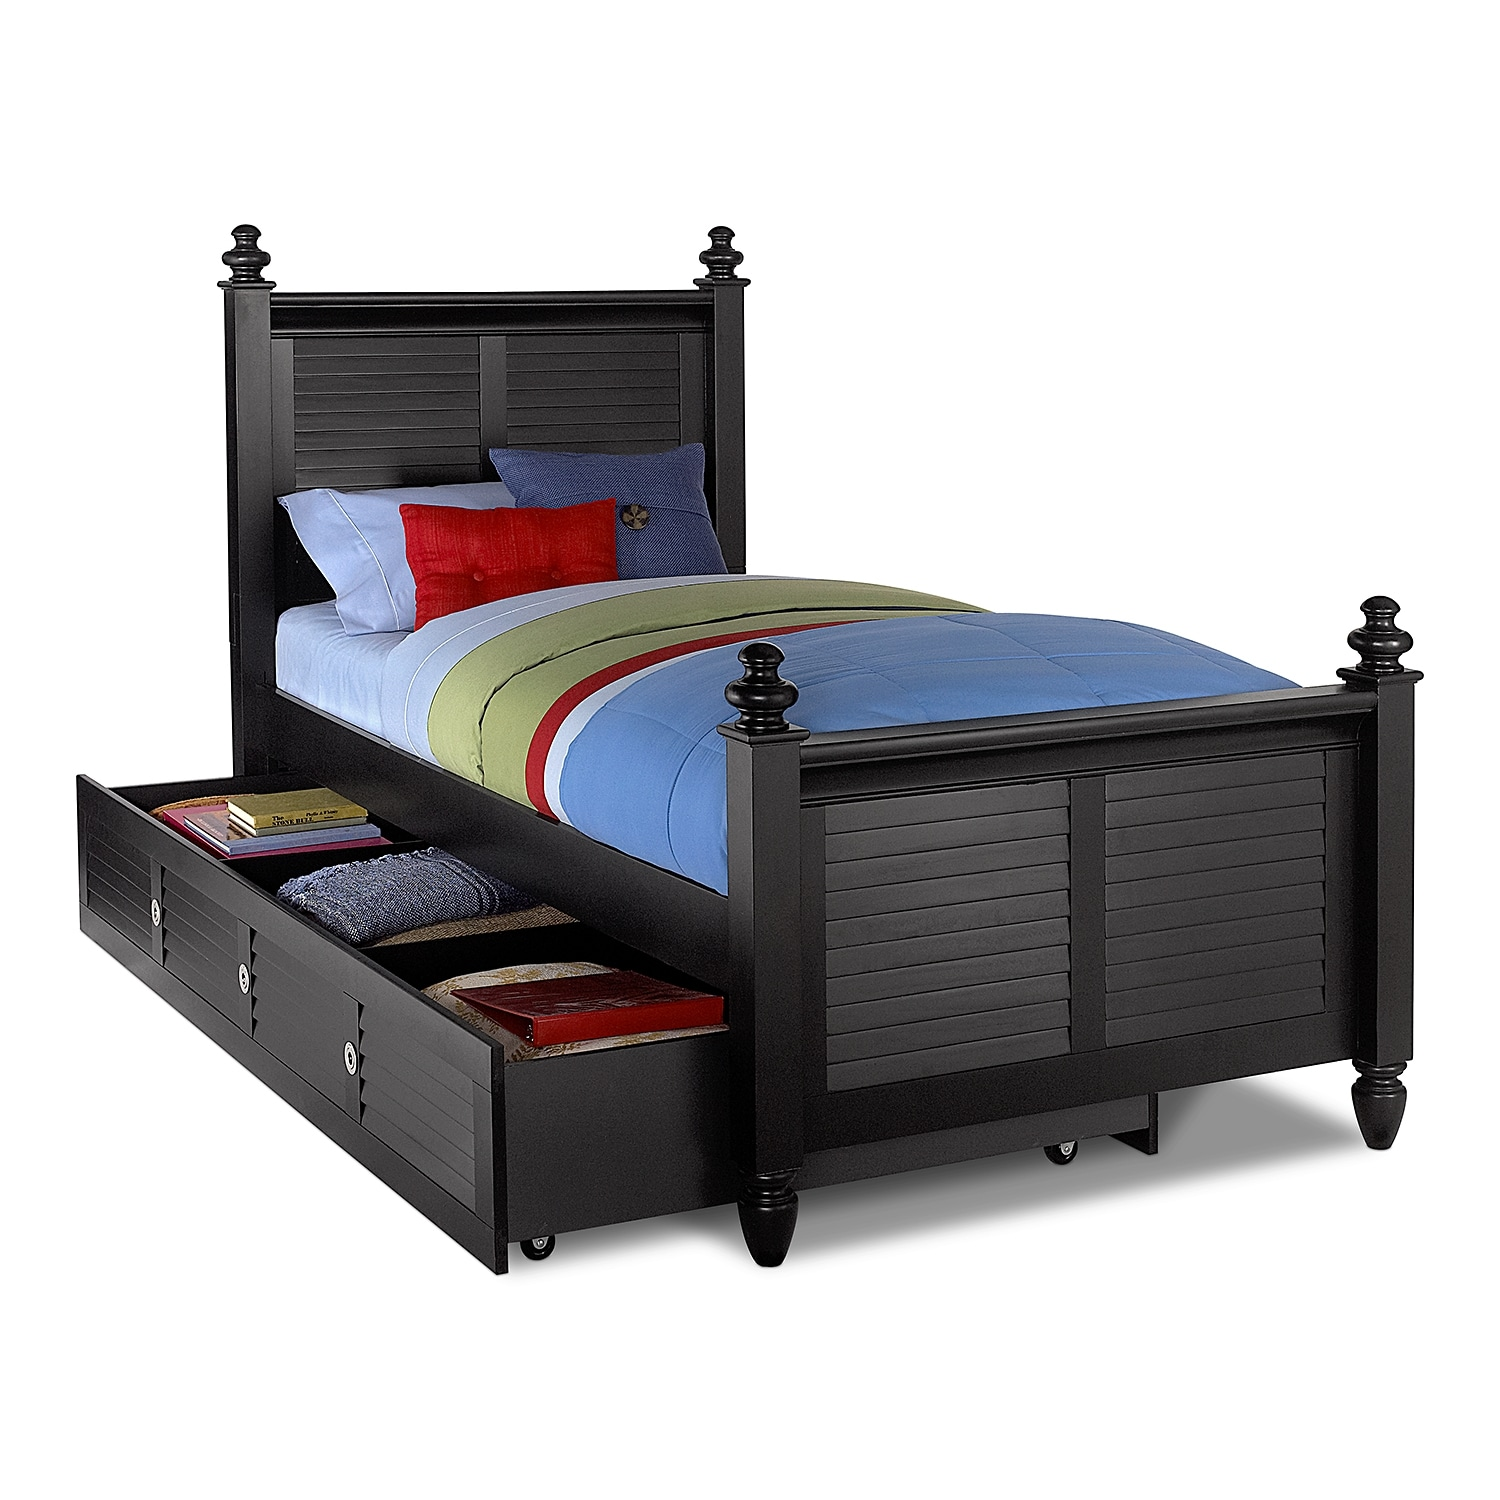 Seaside Black Twin Bed With Trundle Value City Furniture